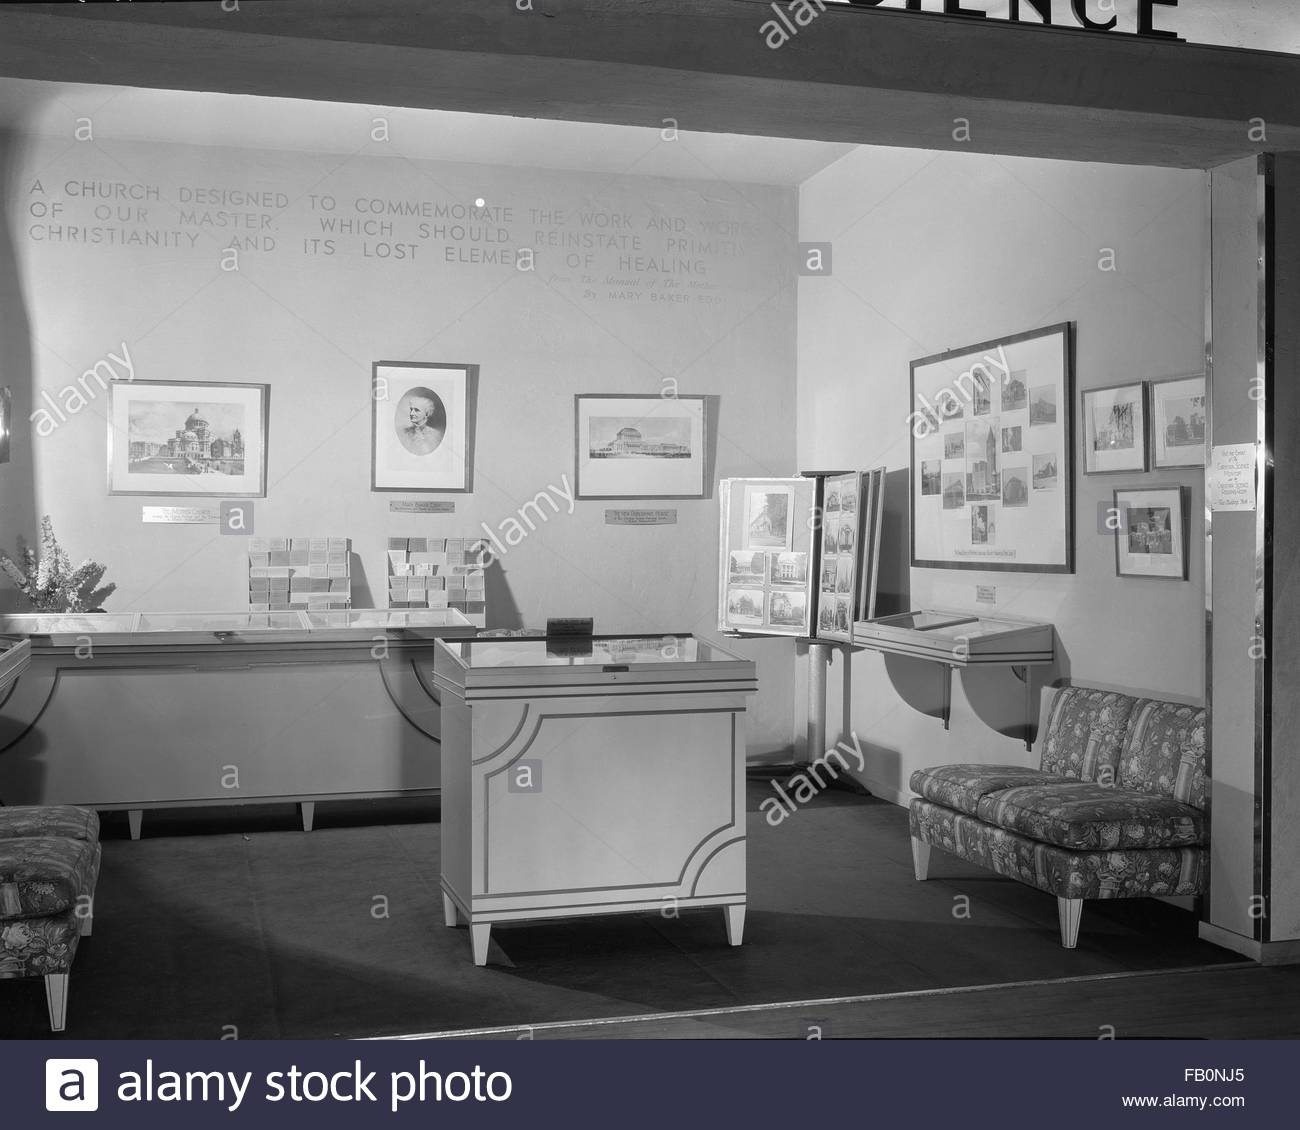 Interior exhibit relating to Christian Science doctrine and its founder, Mary Baker Eddy. Christian Science exhibit - Stock Image